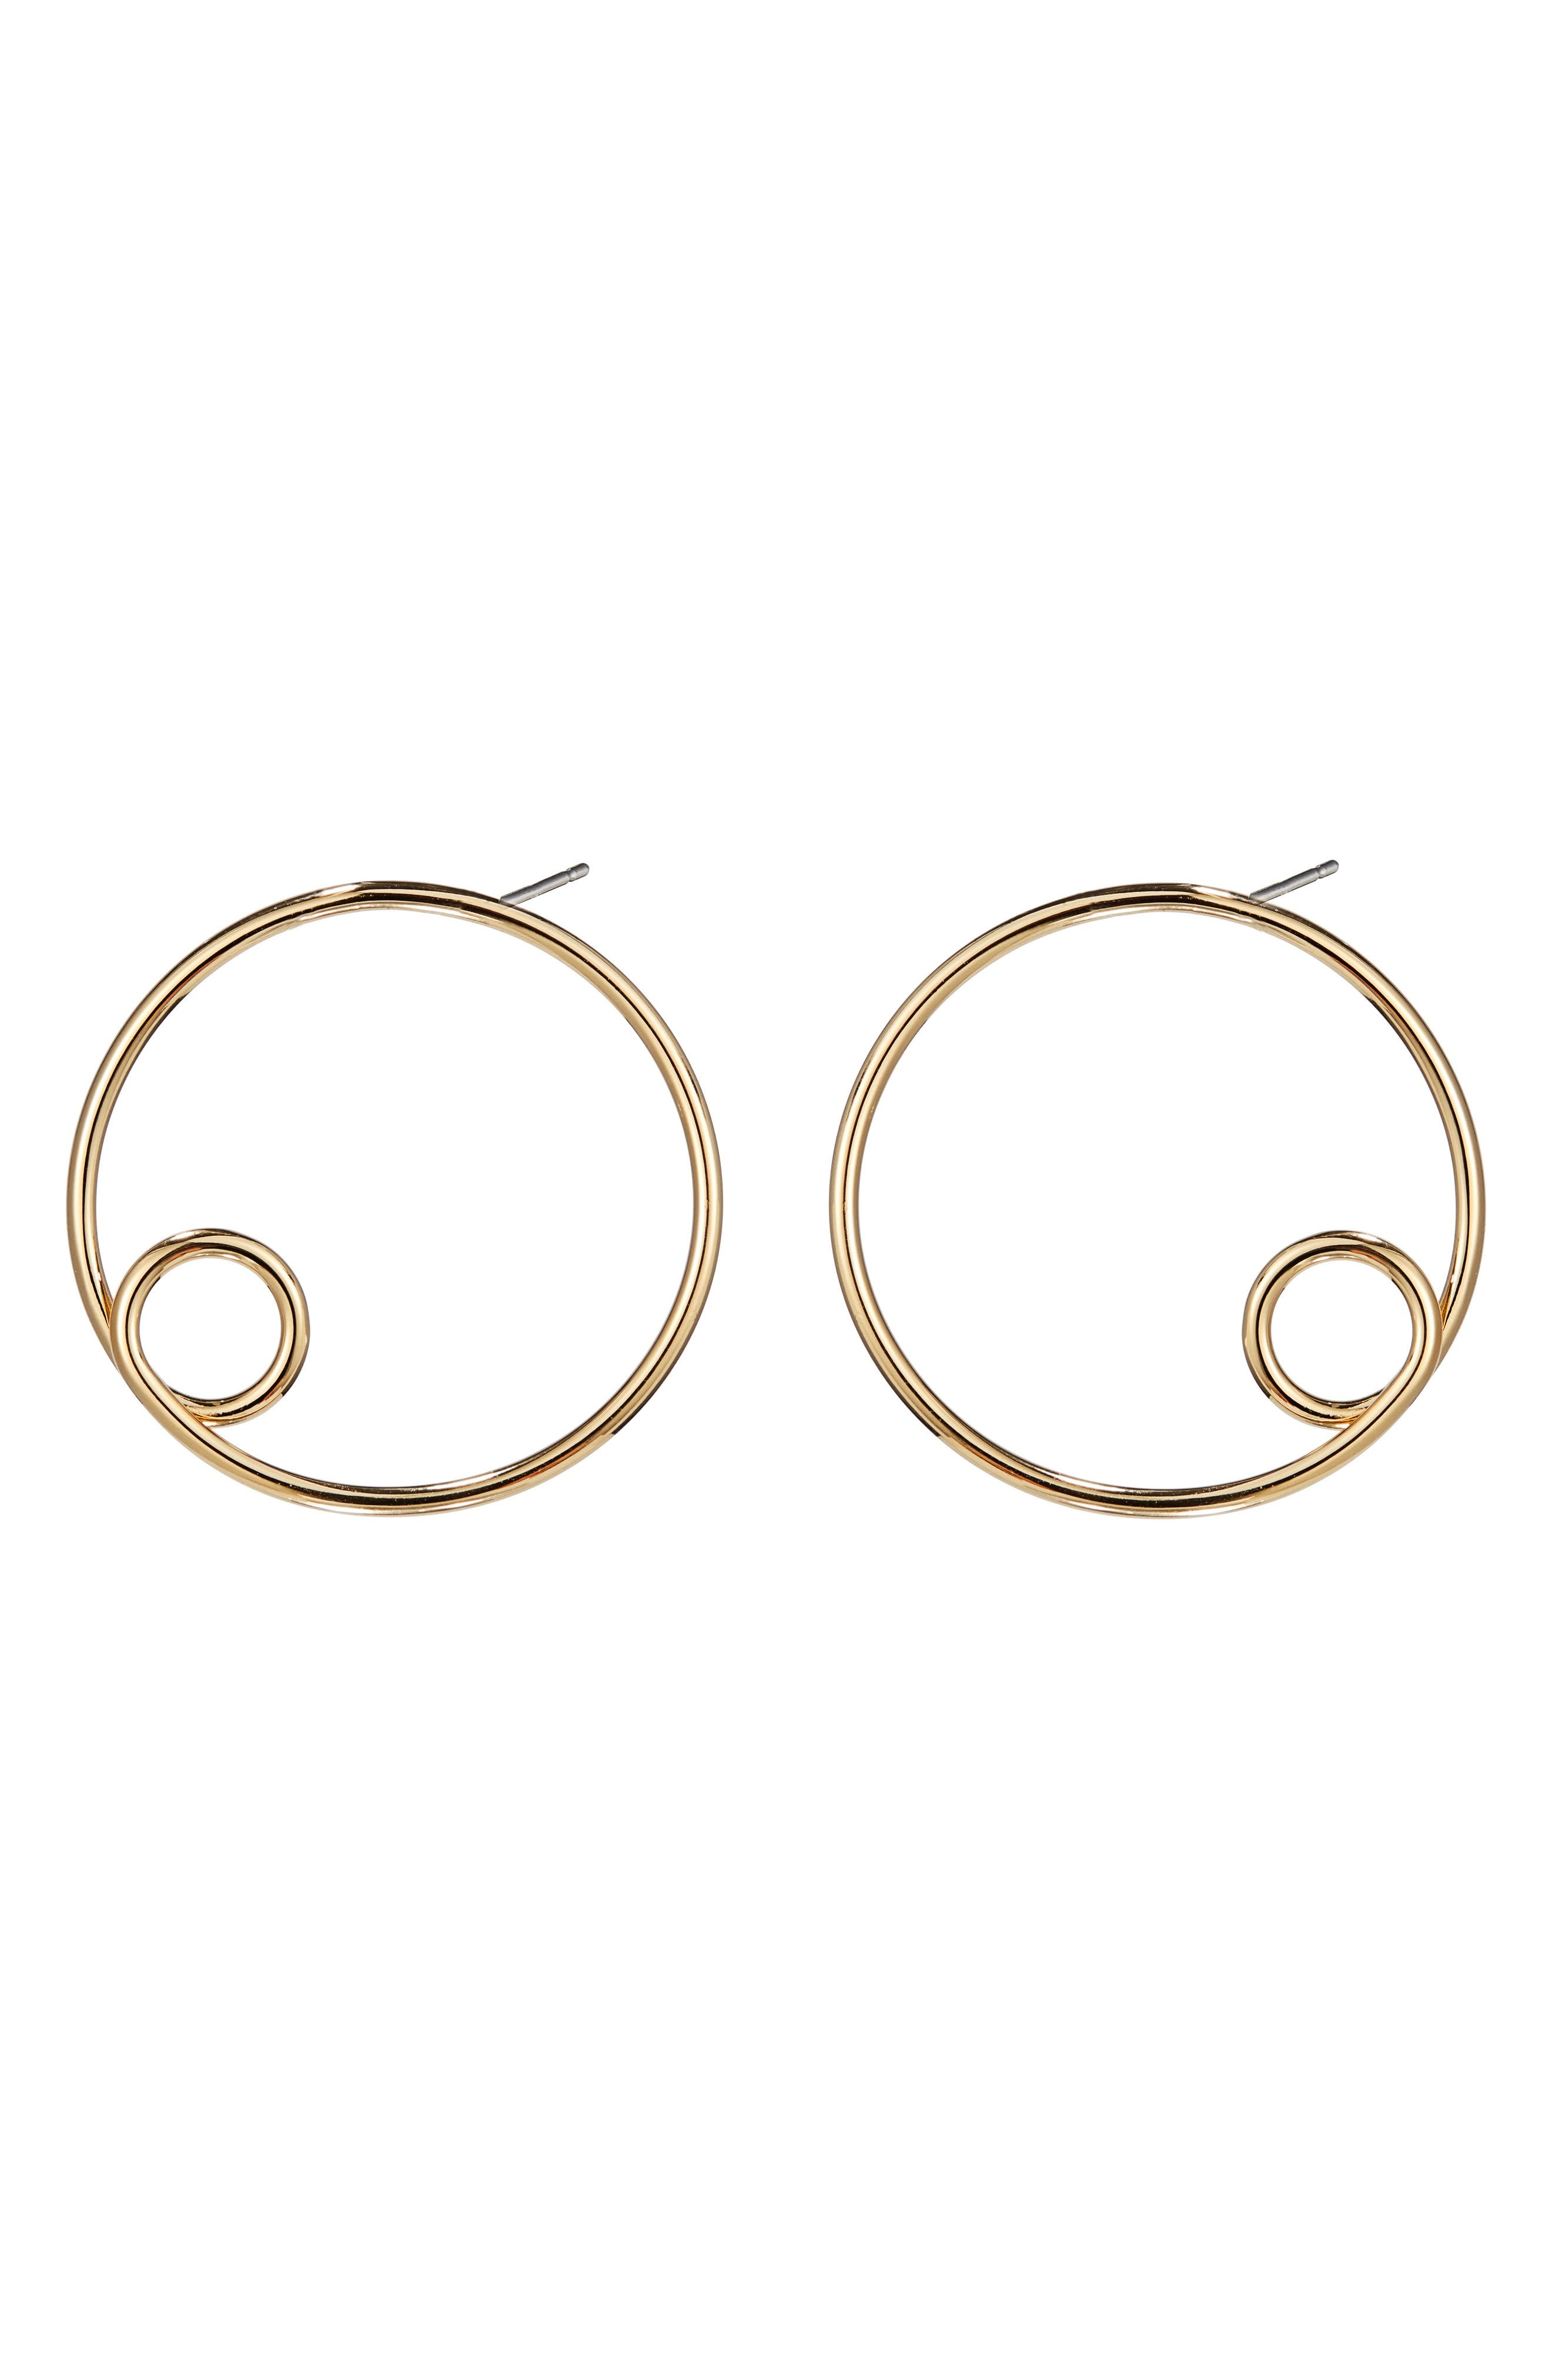 Earrings Wear To Where Looks For Every Occasion Women Nordstrom Atasan Raya Beige Shop At Velvet